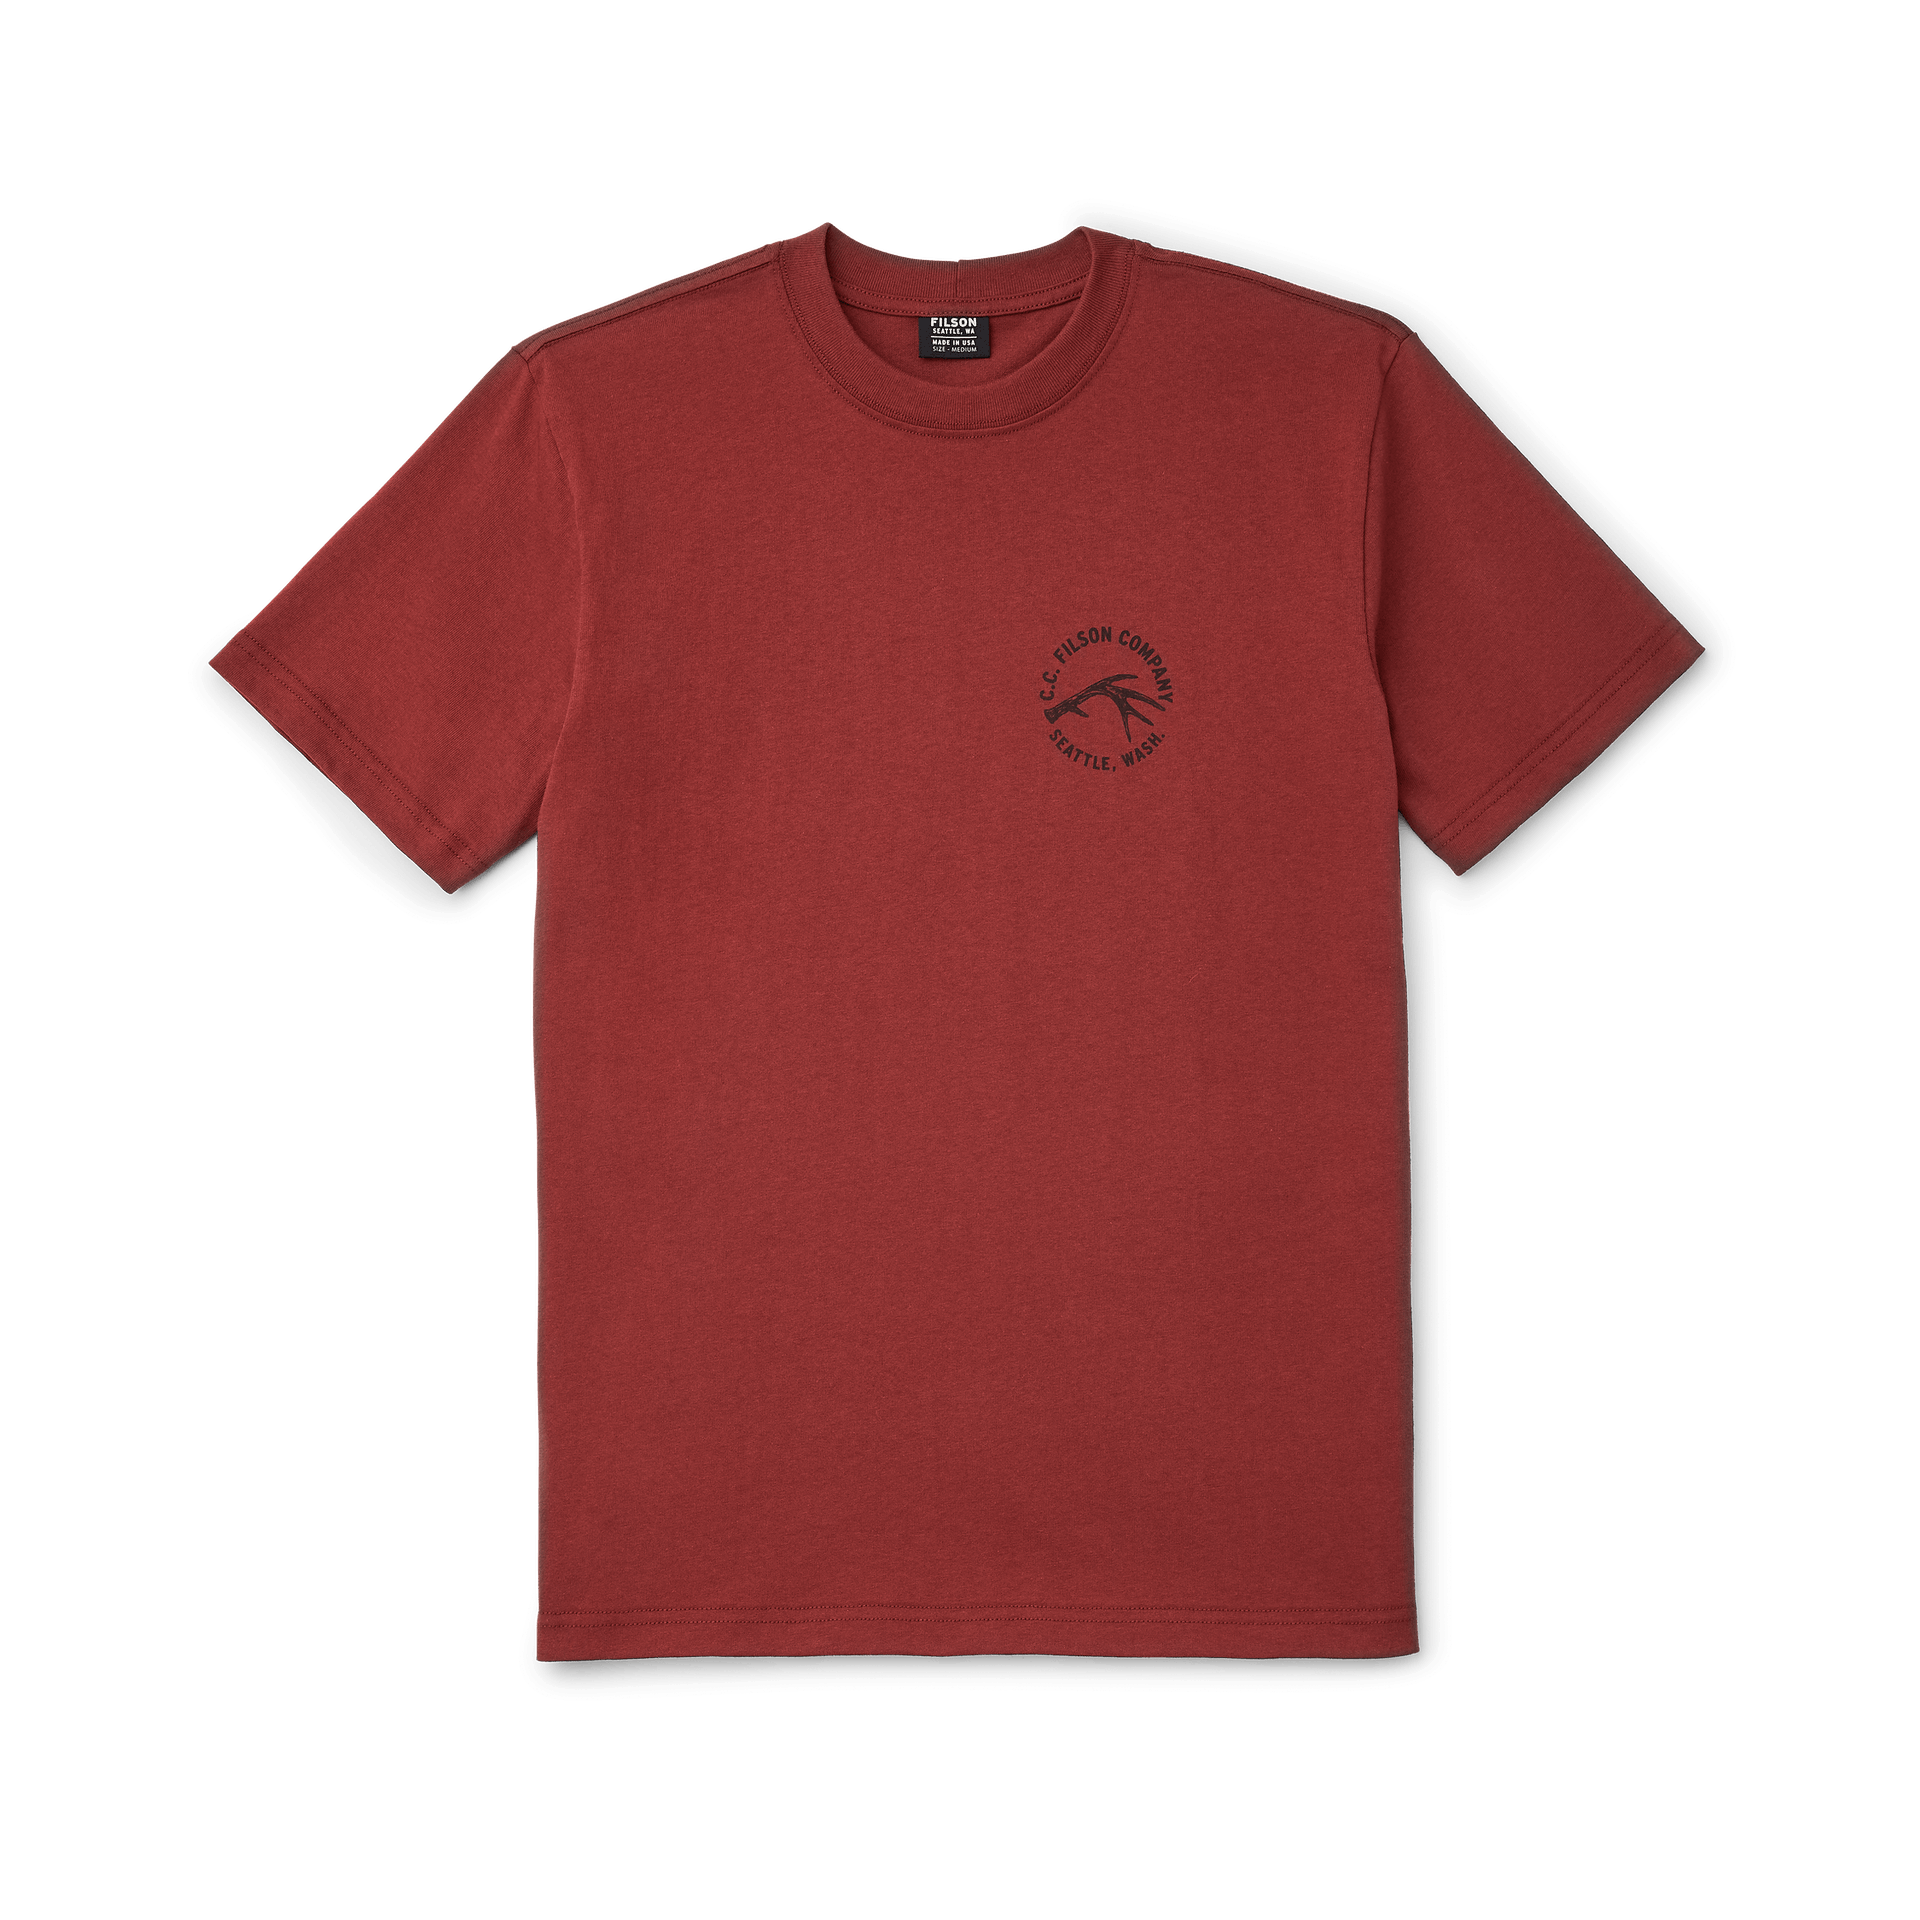 1963 Limited Edition Cool T-SHIRT S-XXL # Red